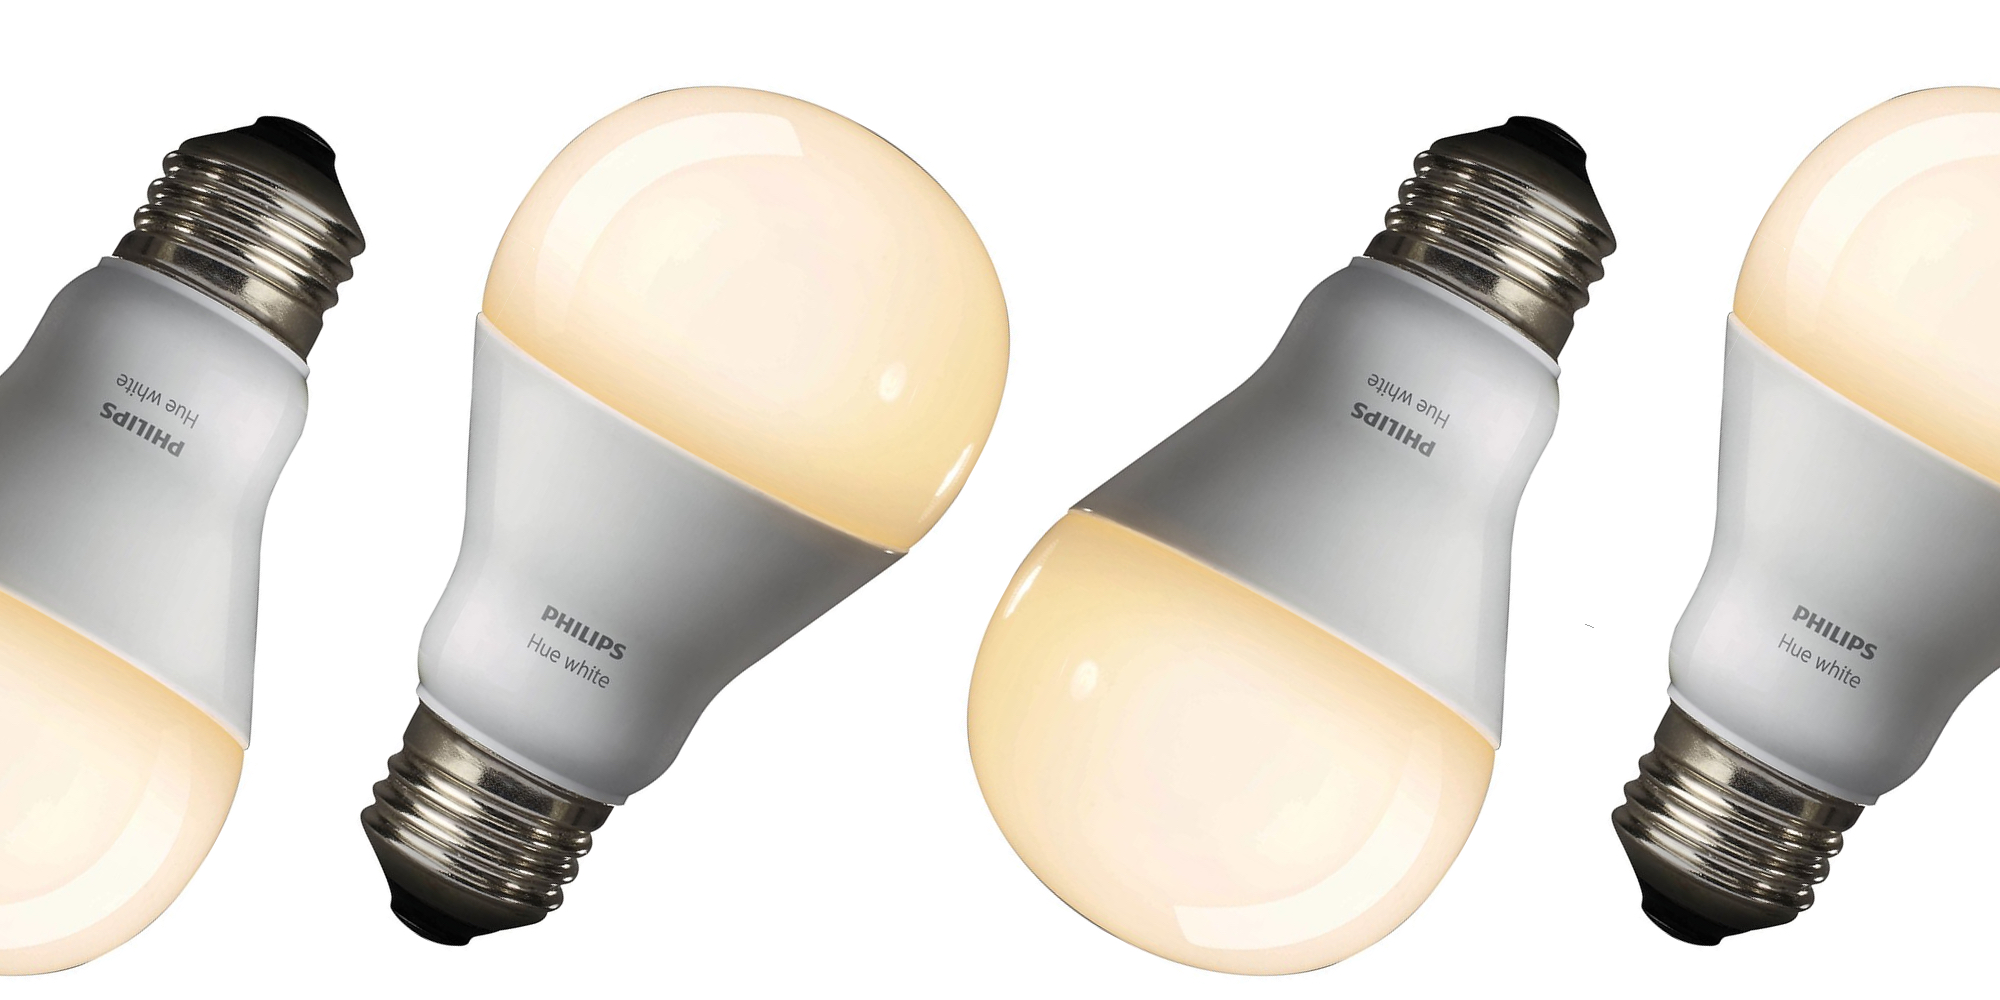 Expand your Philips Hue kit with a dimmable white bulb for $9.50, more from $5